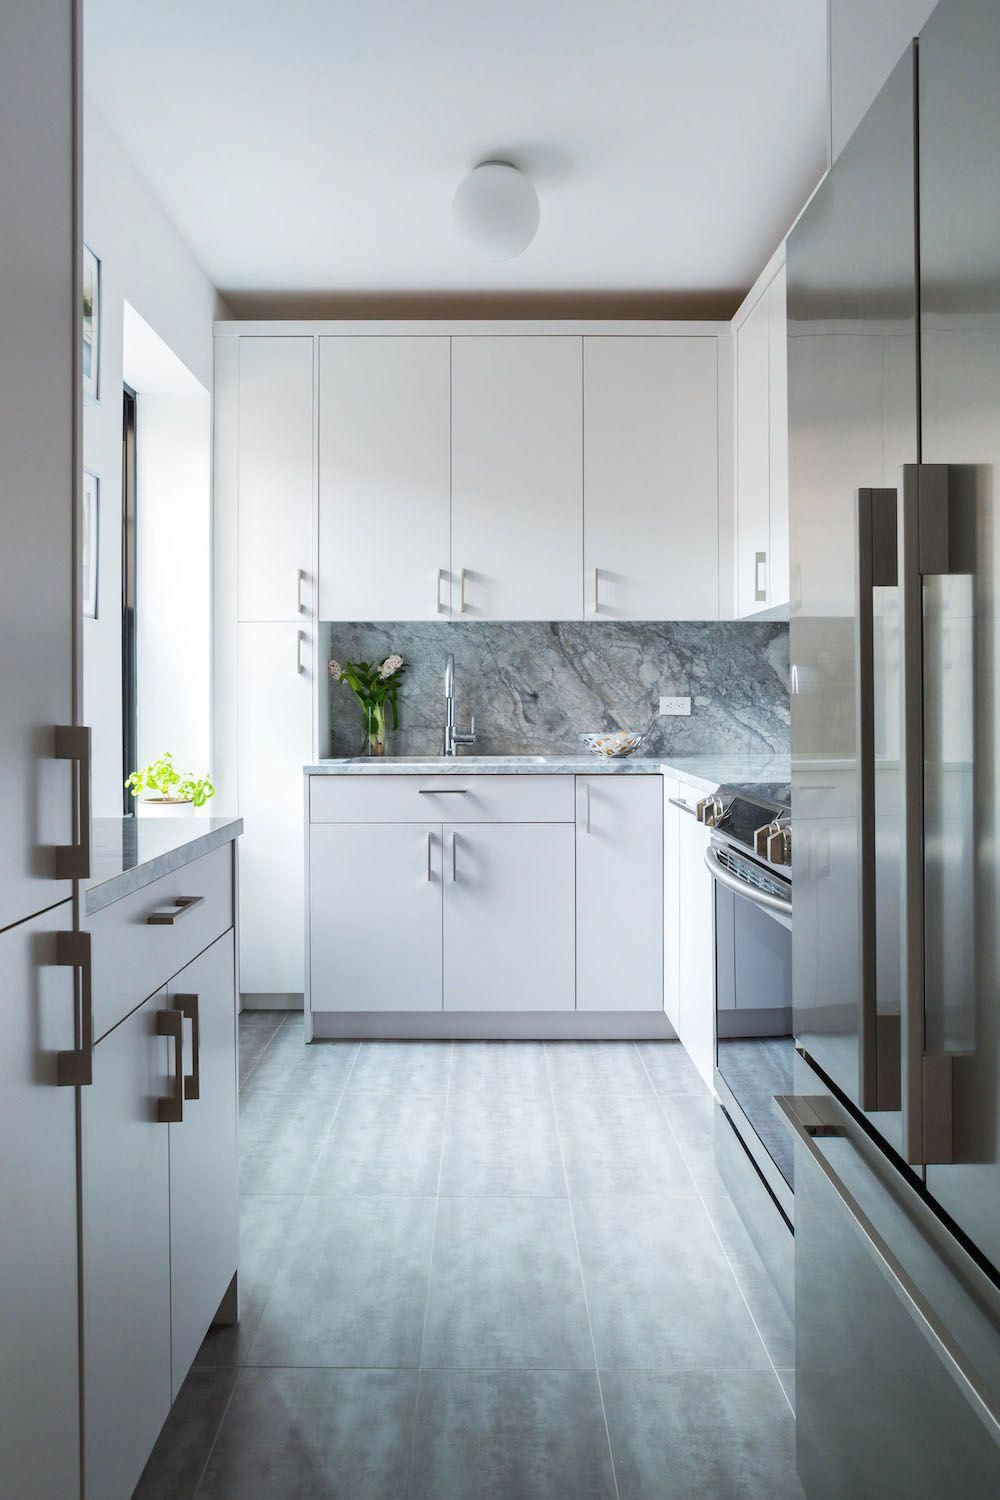 Small kitchen design | Tips and tricks to maximize your small ...